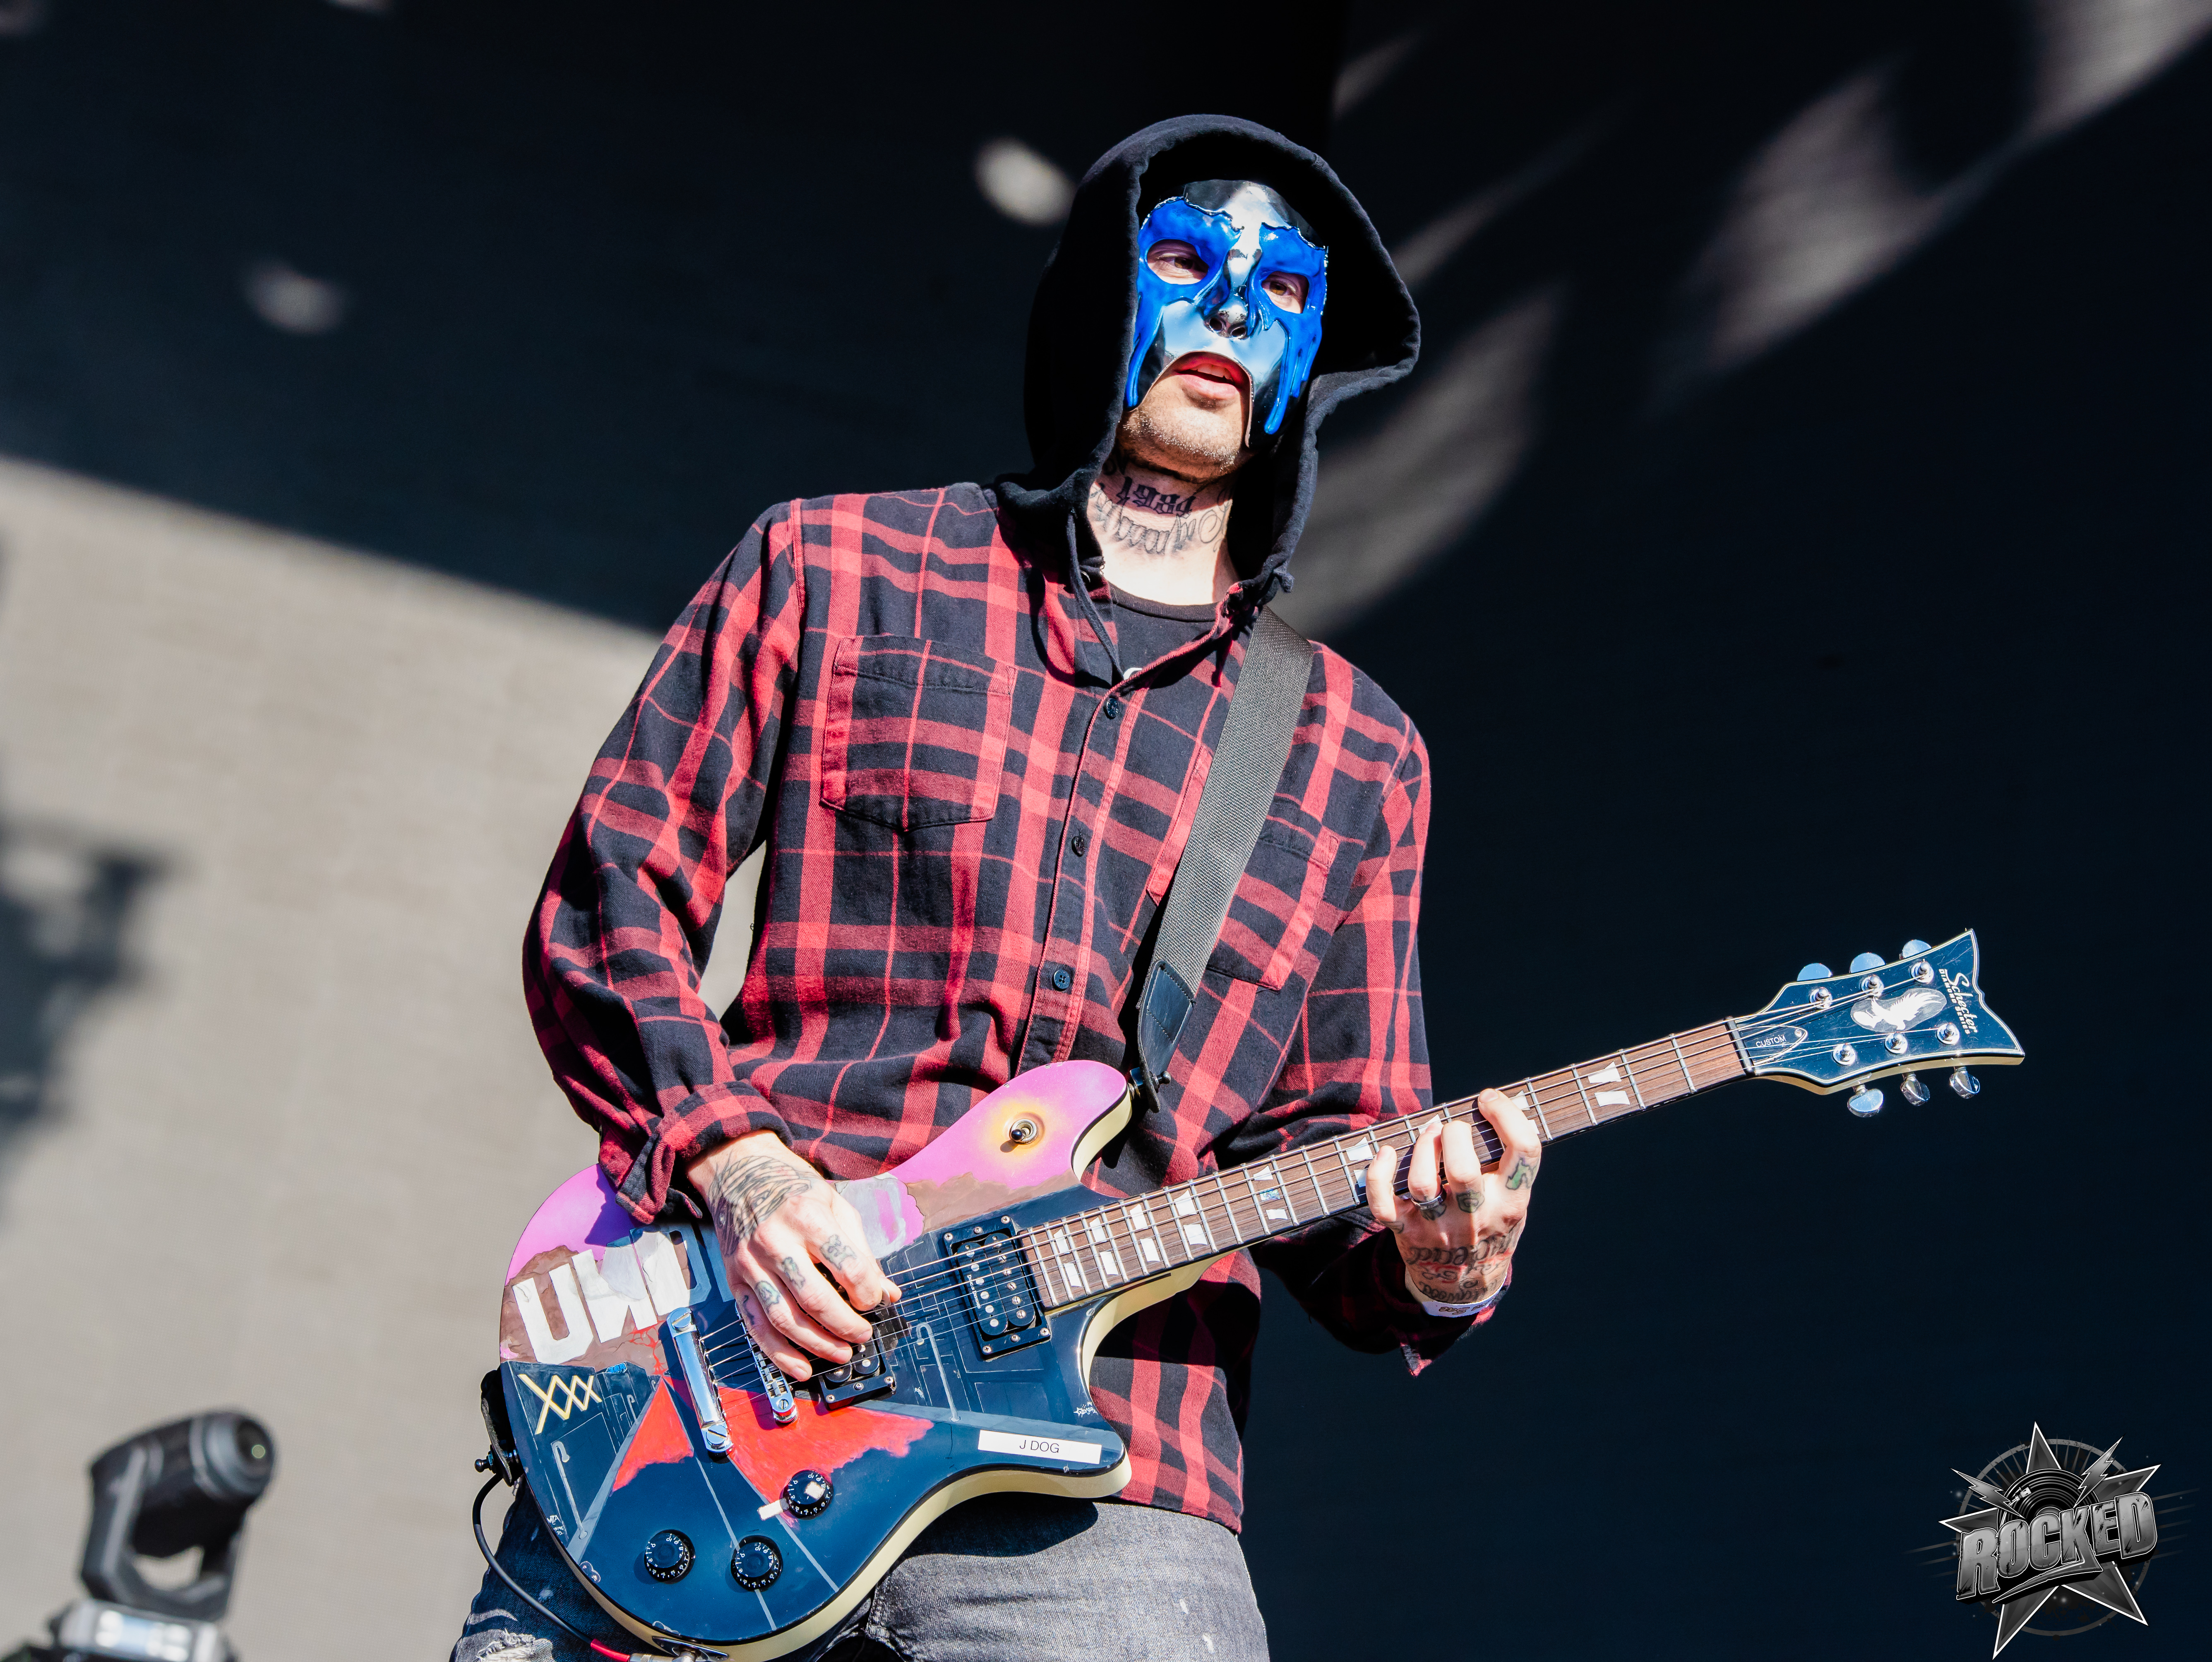 Hollywood-Undead-WTR-2018-Rocked-26 - Rocked